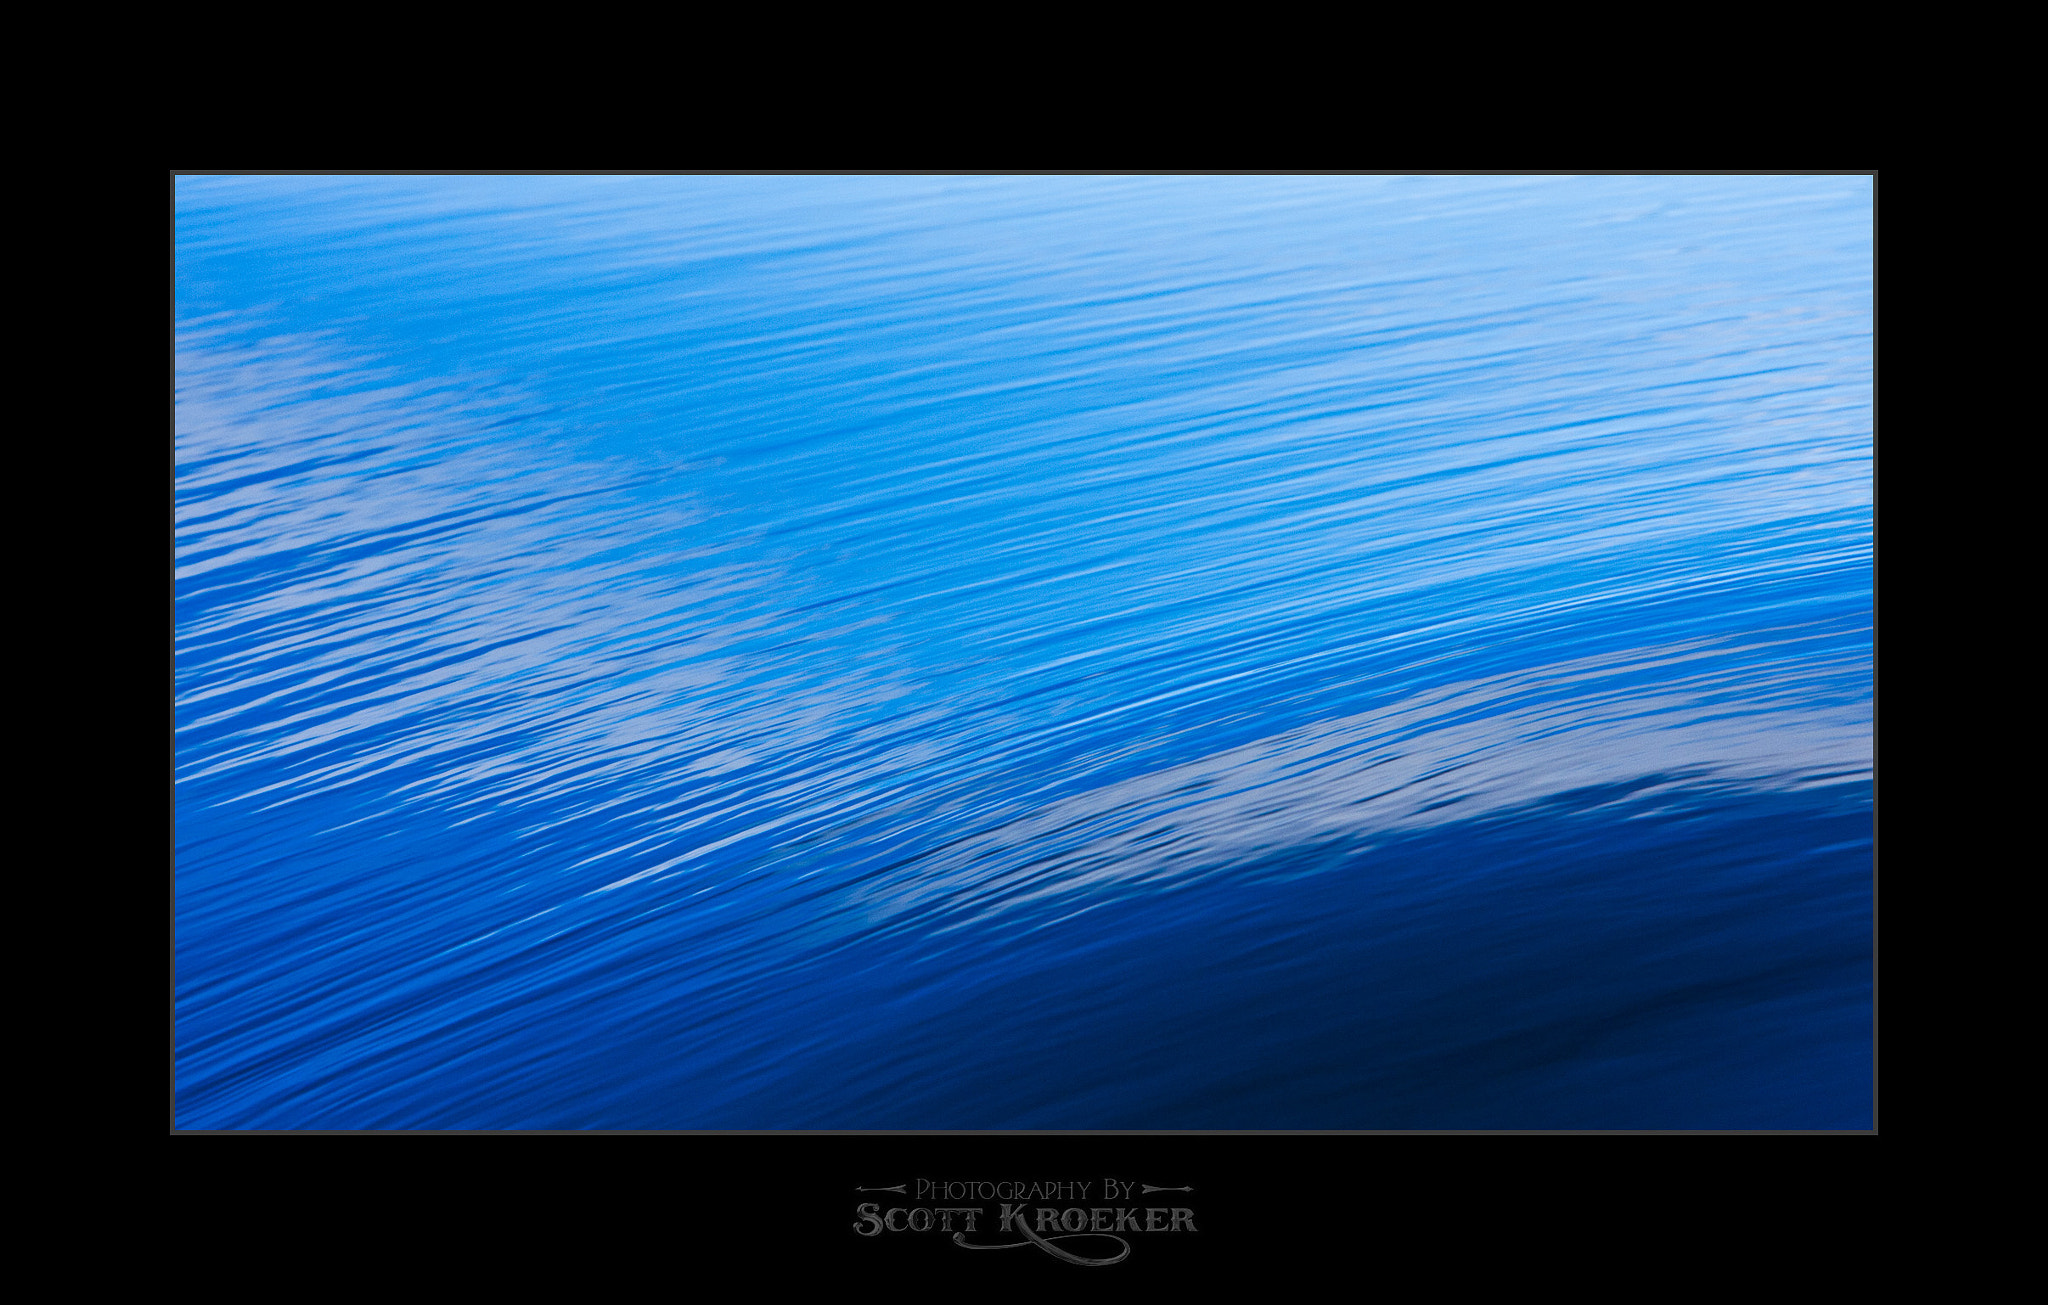 Photograph Blue Wave II by Scott Kroeker on 500px